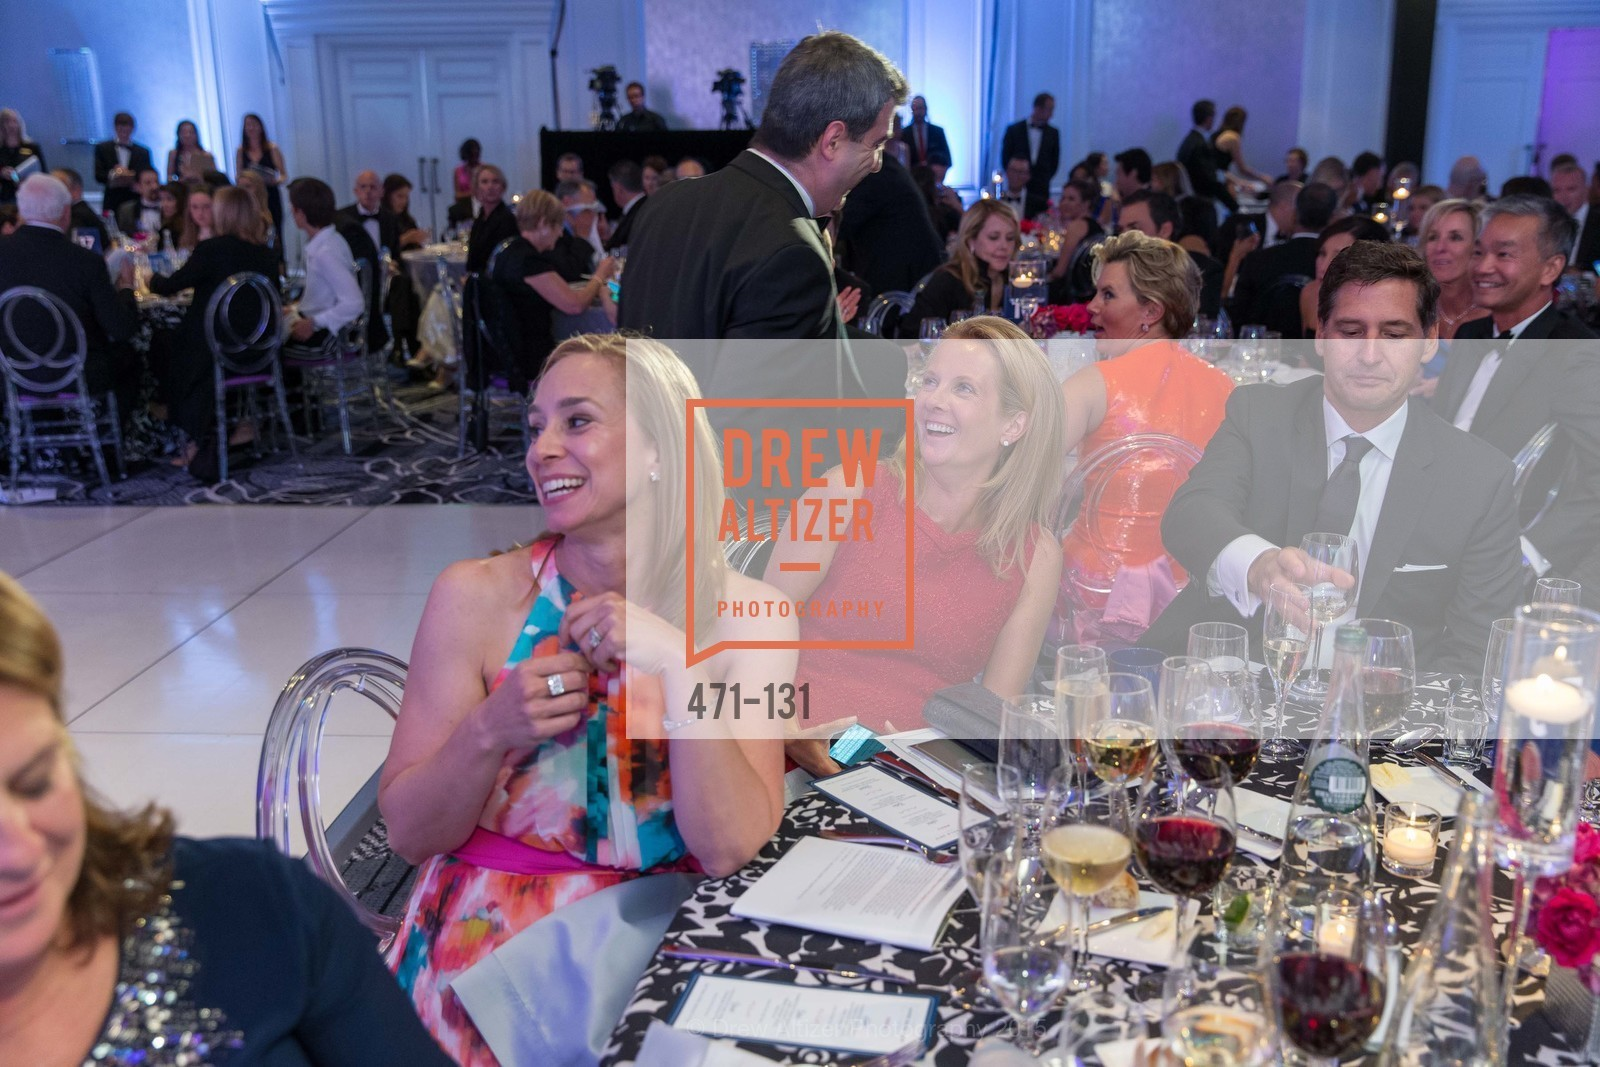 Samantha Furstein, JUVENILE DIABETES RESEARCH FOUNDATION  Hope Gala, The Ritz-Carlton, May 29th, 2015,Drew Altizer, Drew Altizer Photography, full-service agency, private events, San Francisco photographer, photographer california